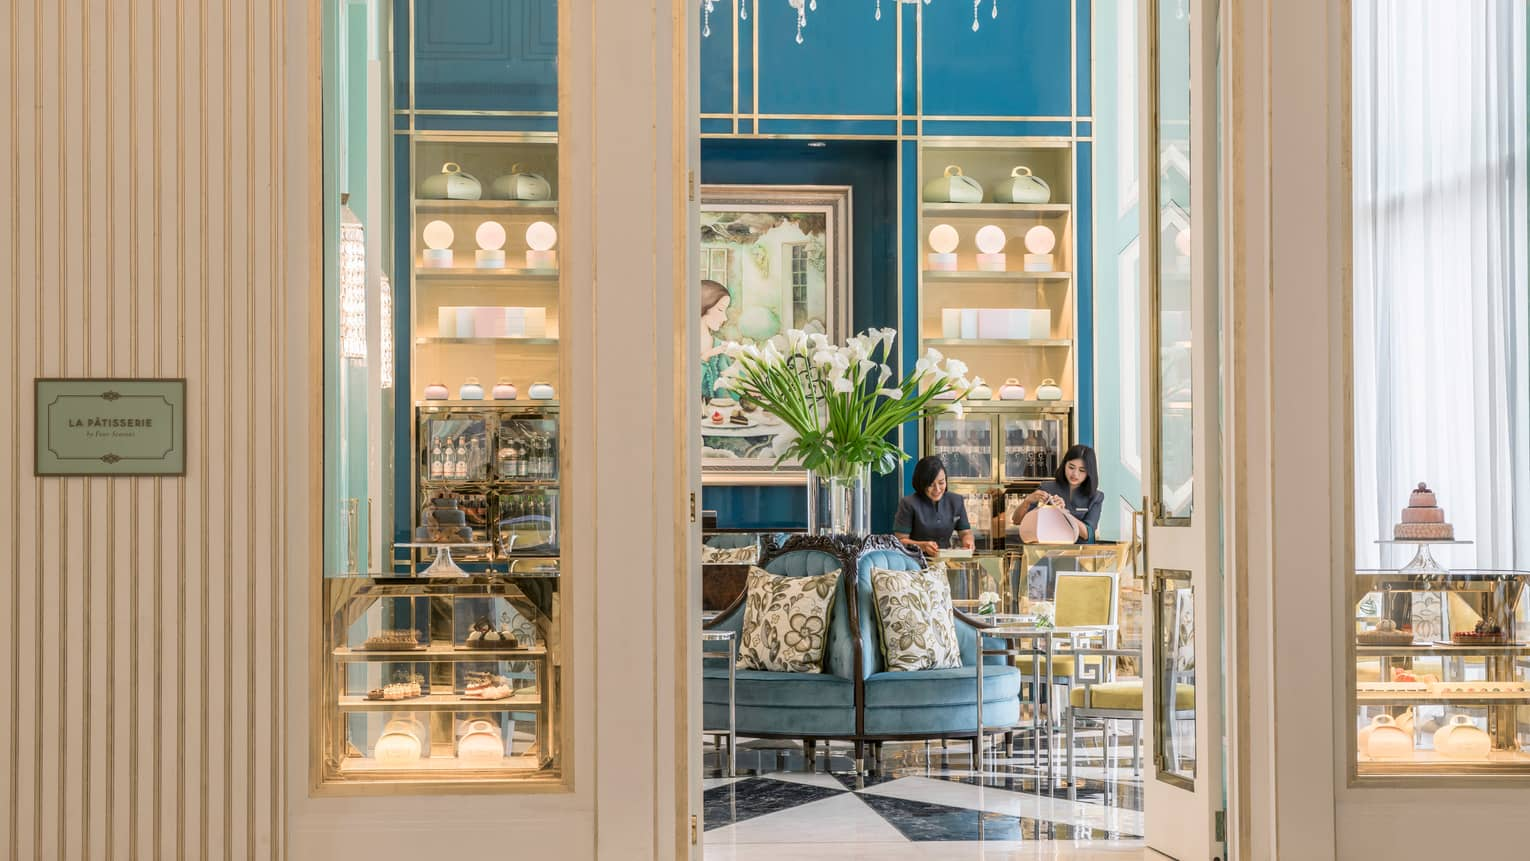 View inside La Patisserie doors with elegant blue and gold chairs, tall glass vase with white flowers, woman fastening pink box